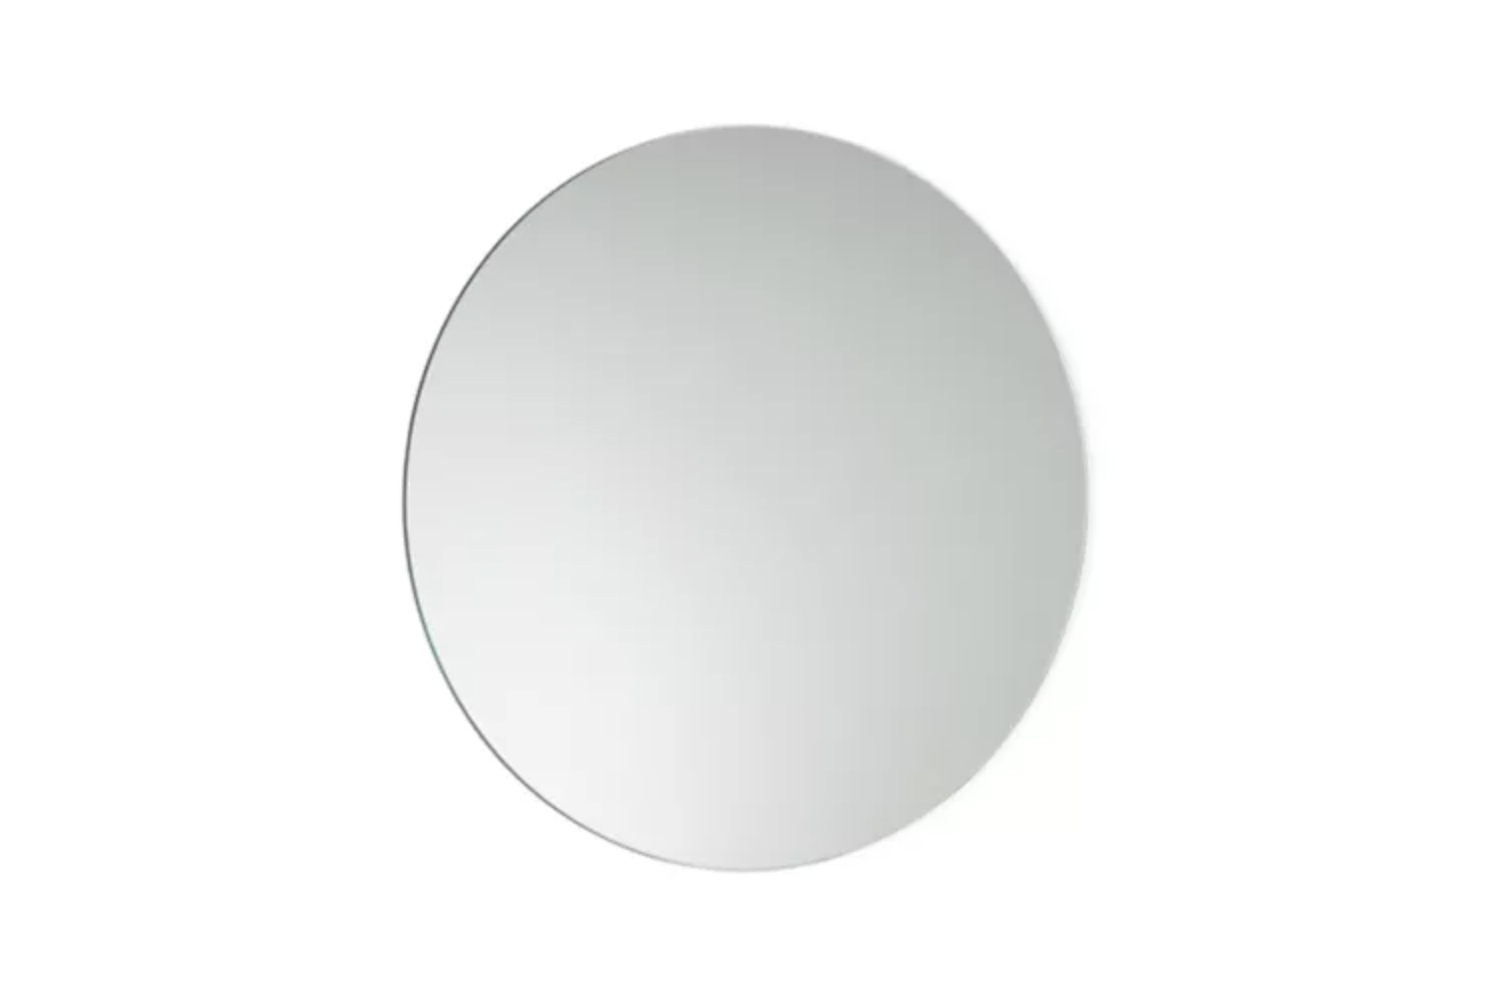 From Room & Board, the minimalist Focus Mirror is $9.